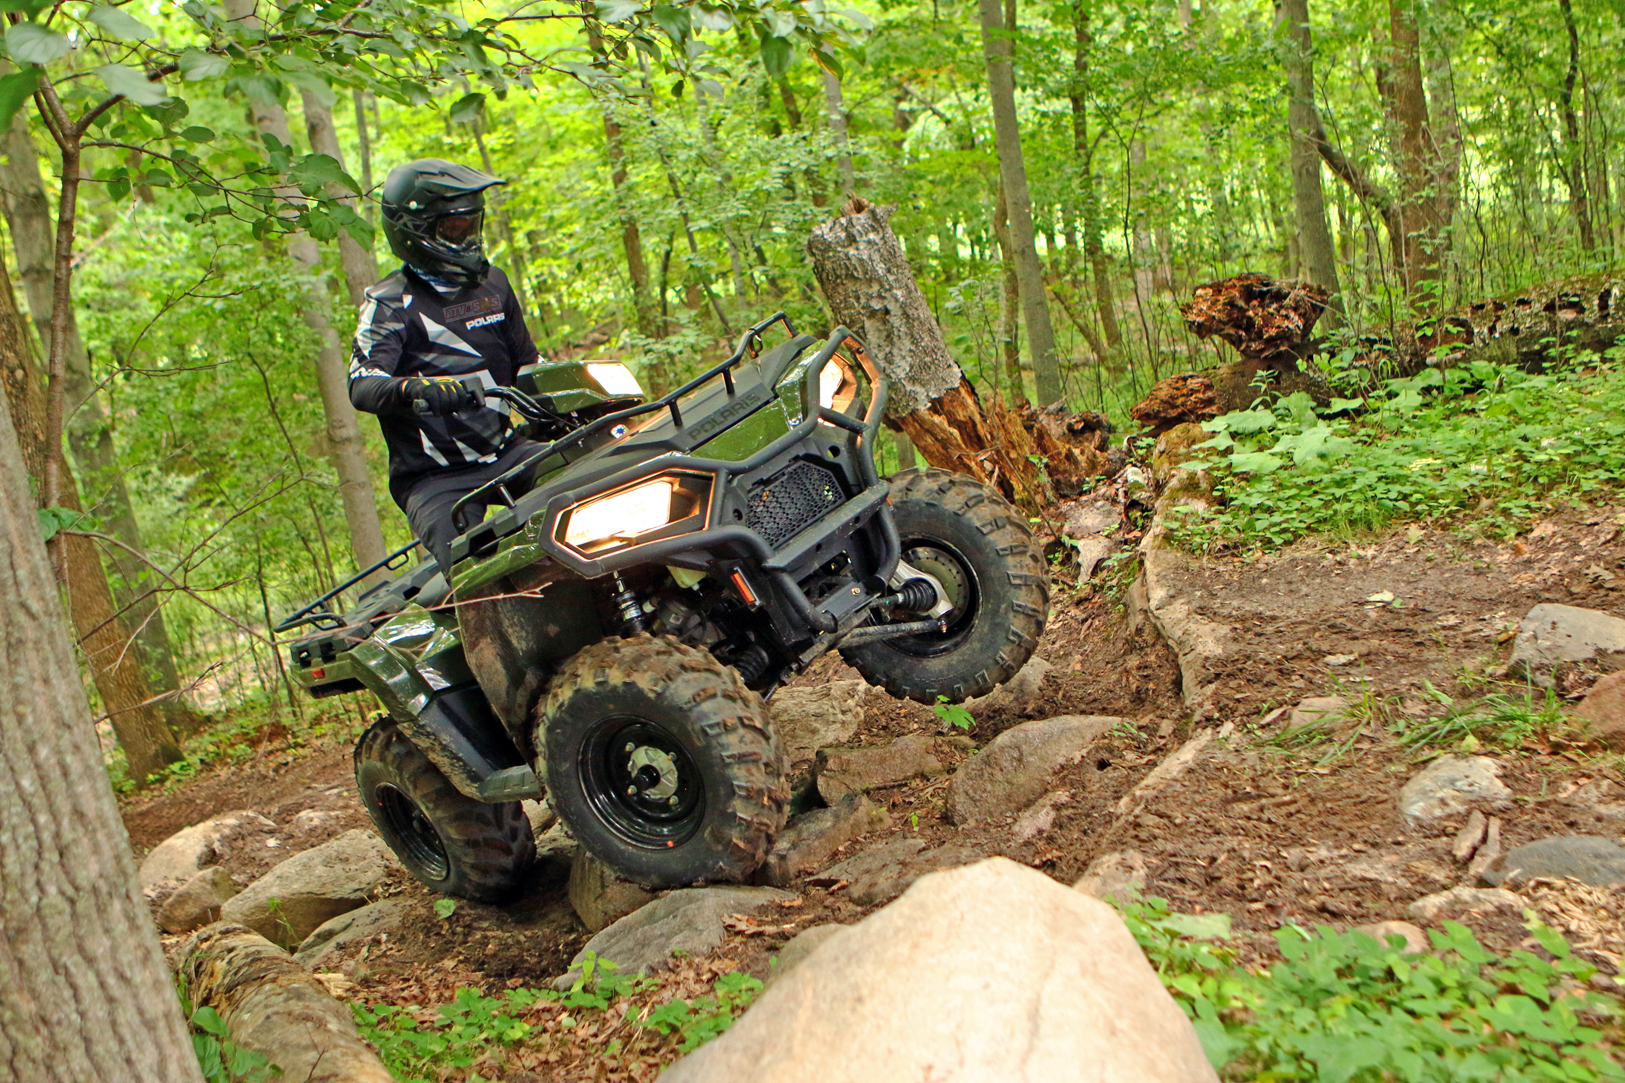 2021-polaris-sportsman-570-green-atv_illustrated-cov.jpg